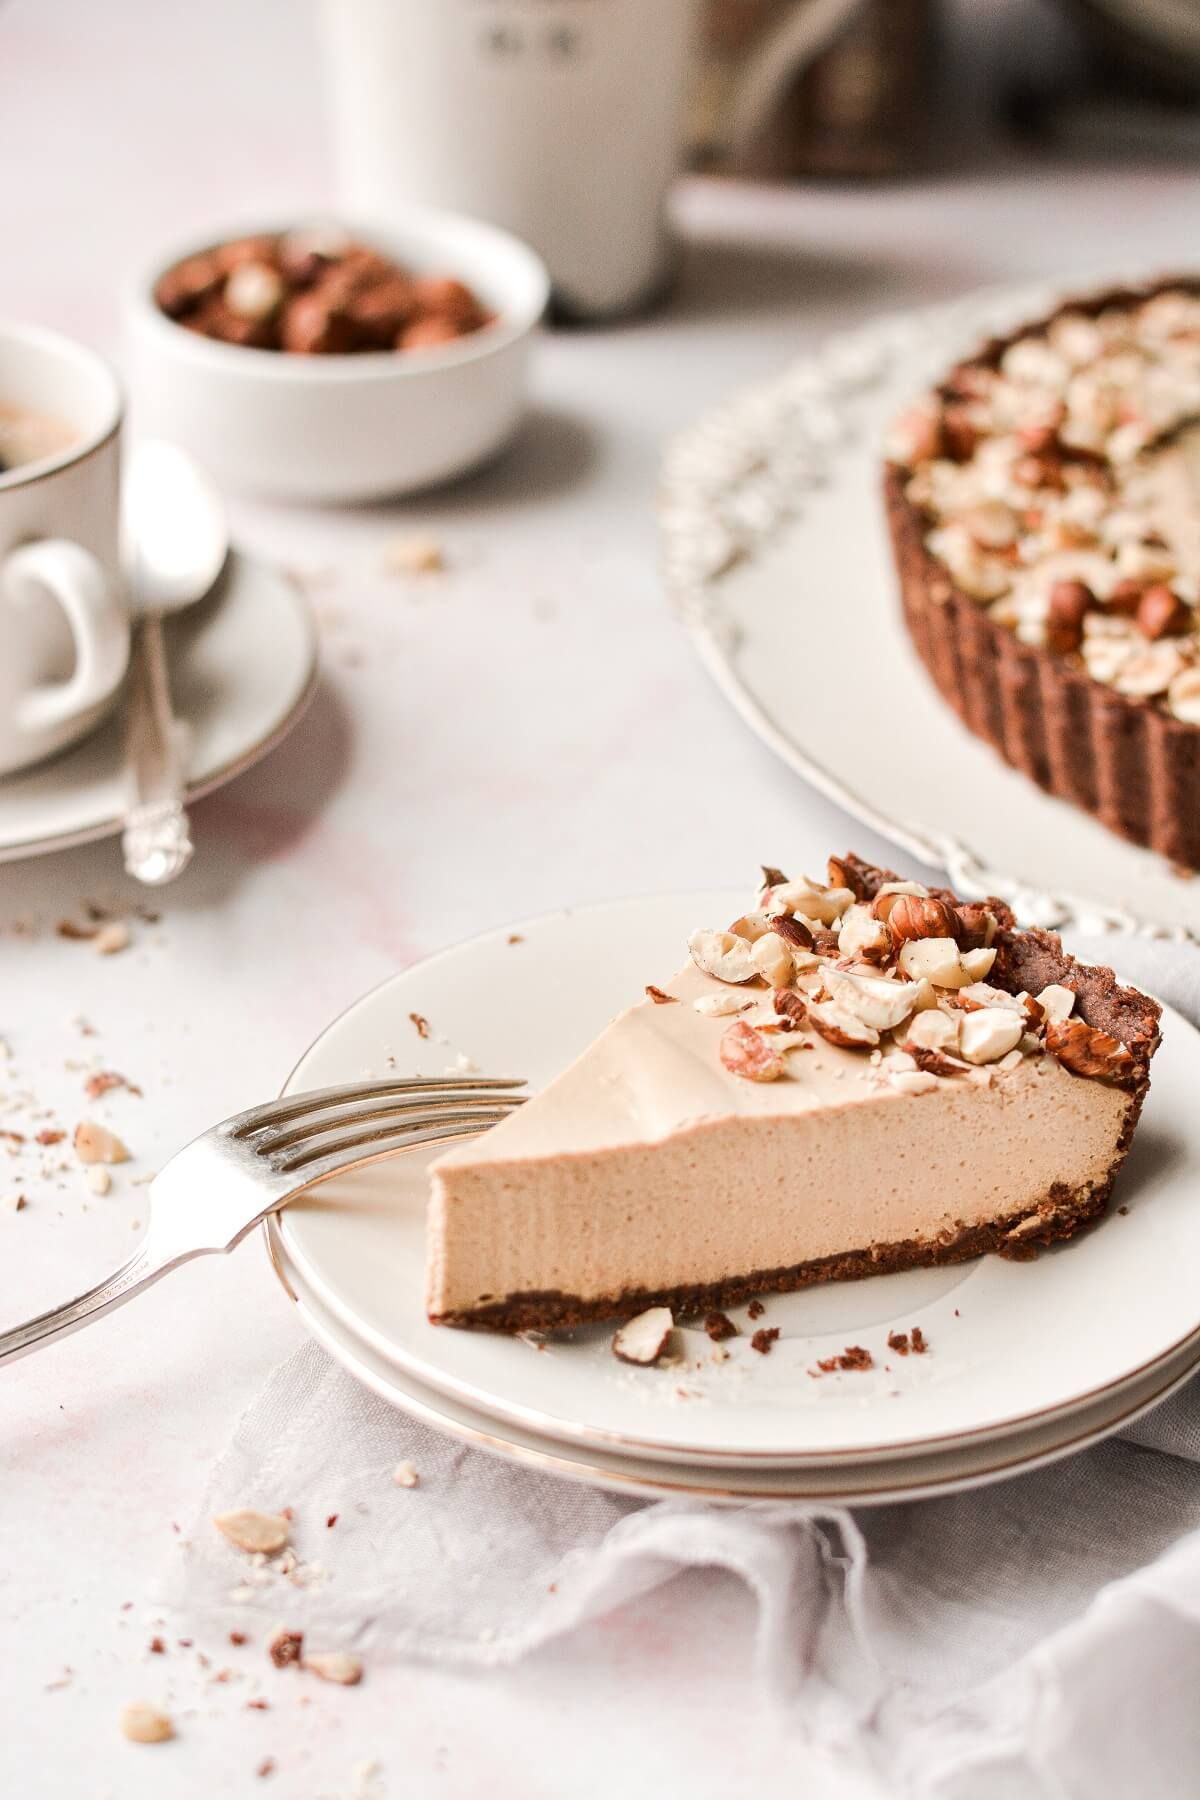 A slice of coffee cream tart on a white plate.